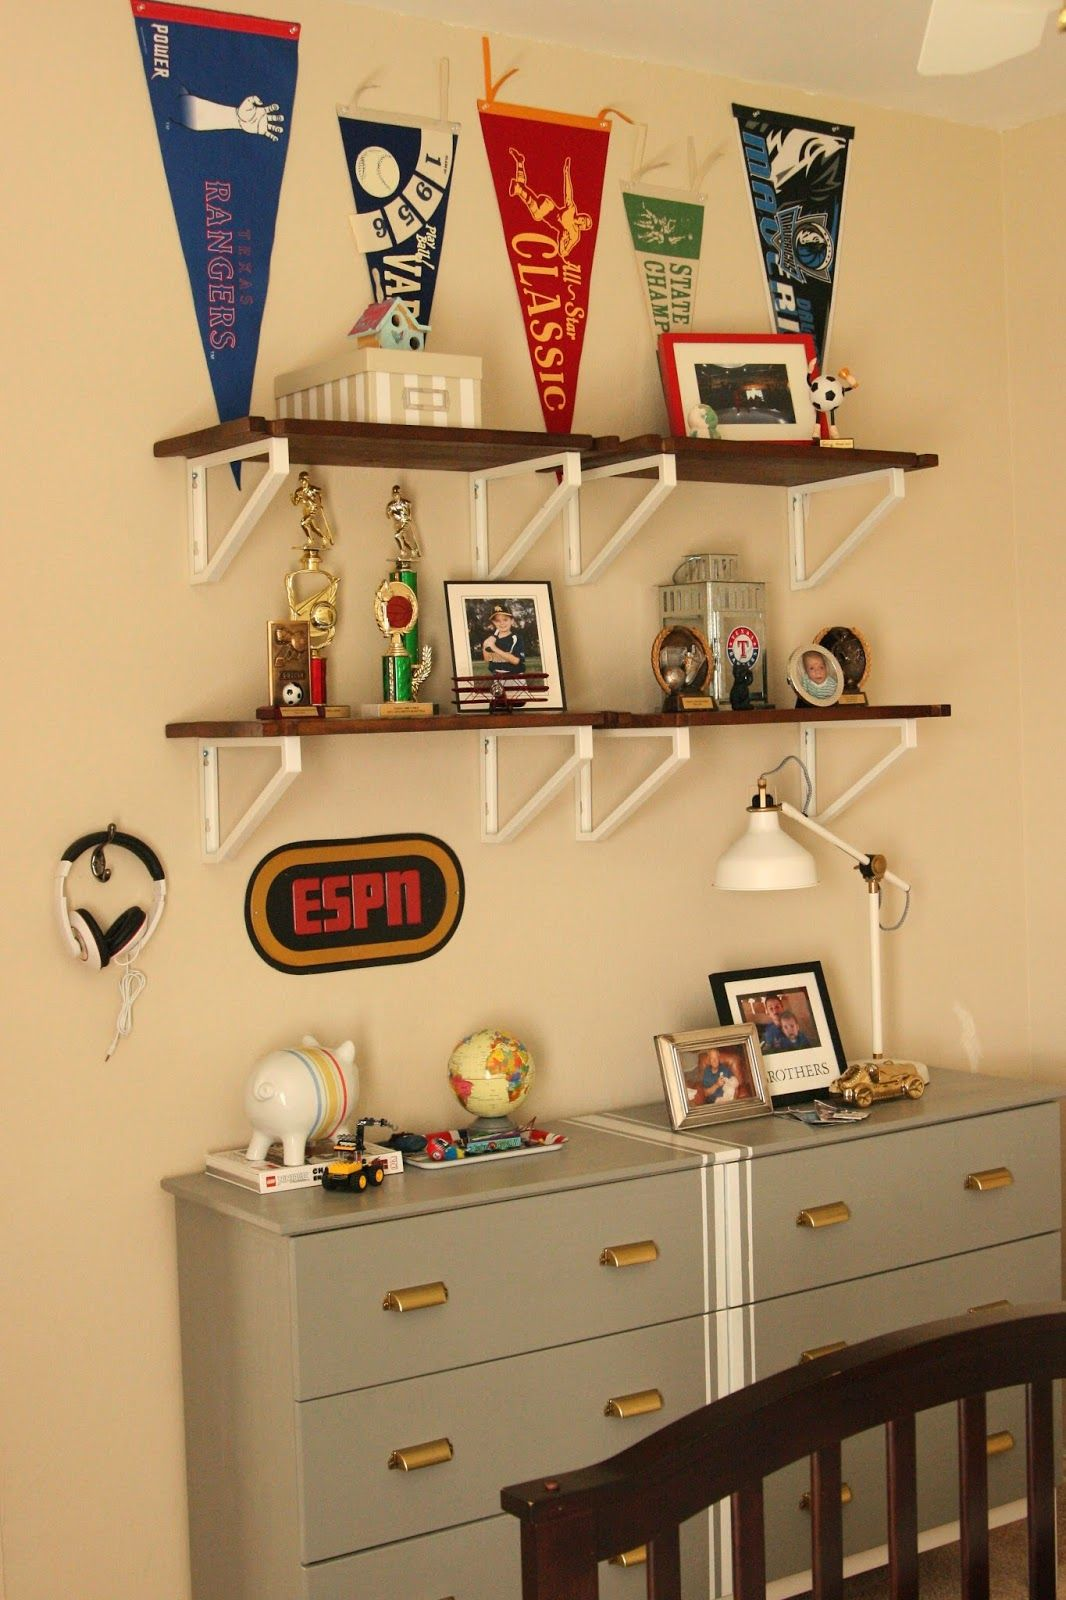 These brackets with white shelves would disappear into a white wall. Ikea Tarva- Ikea Brackets